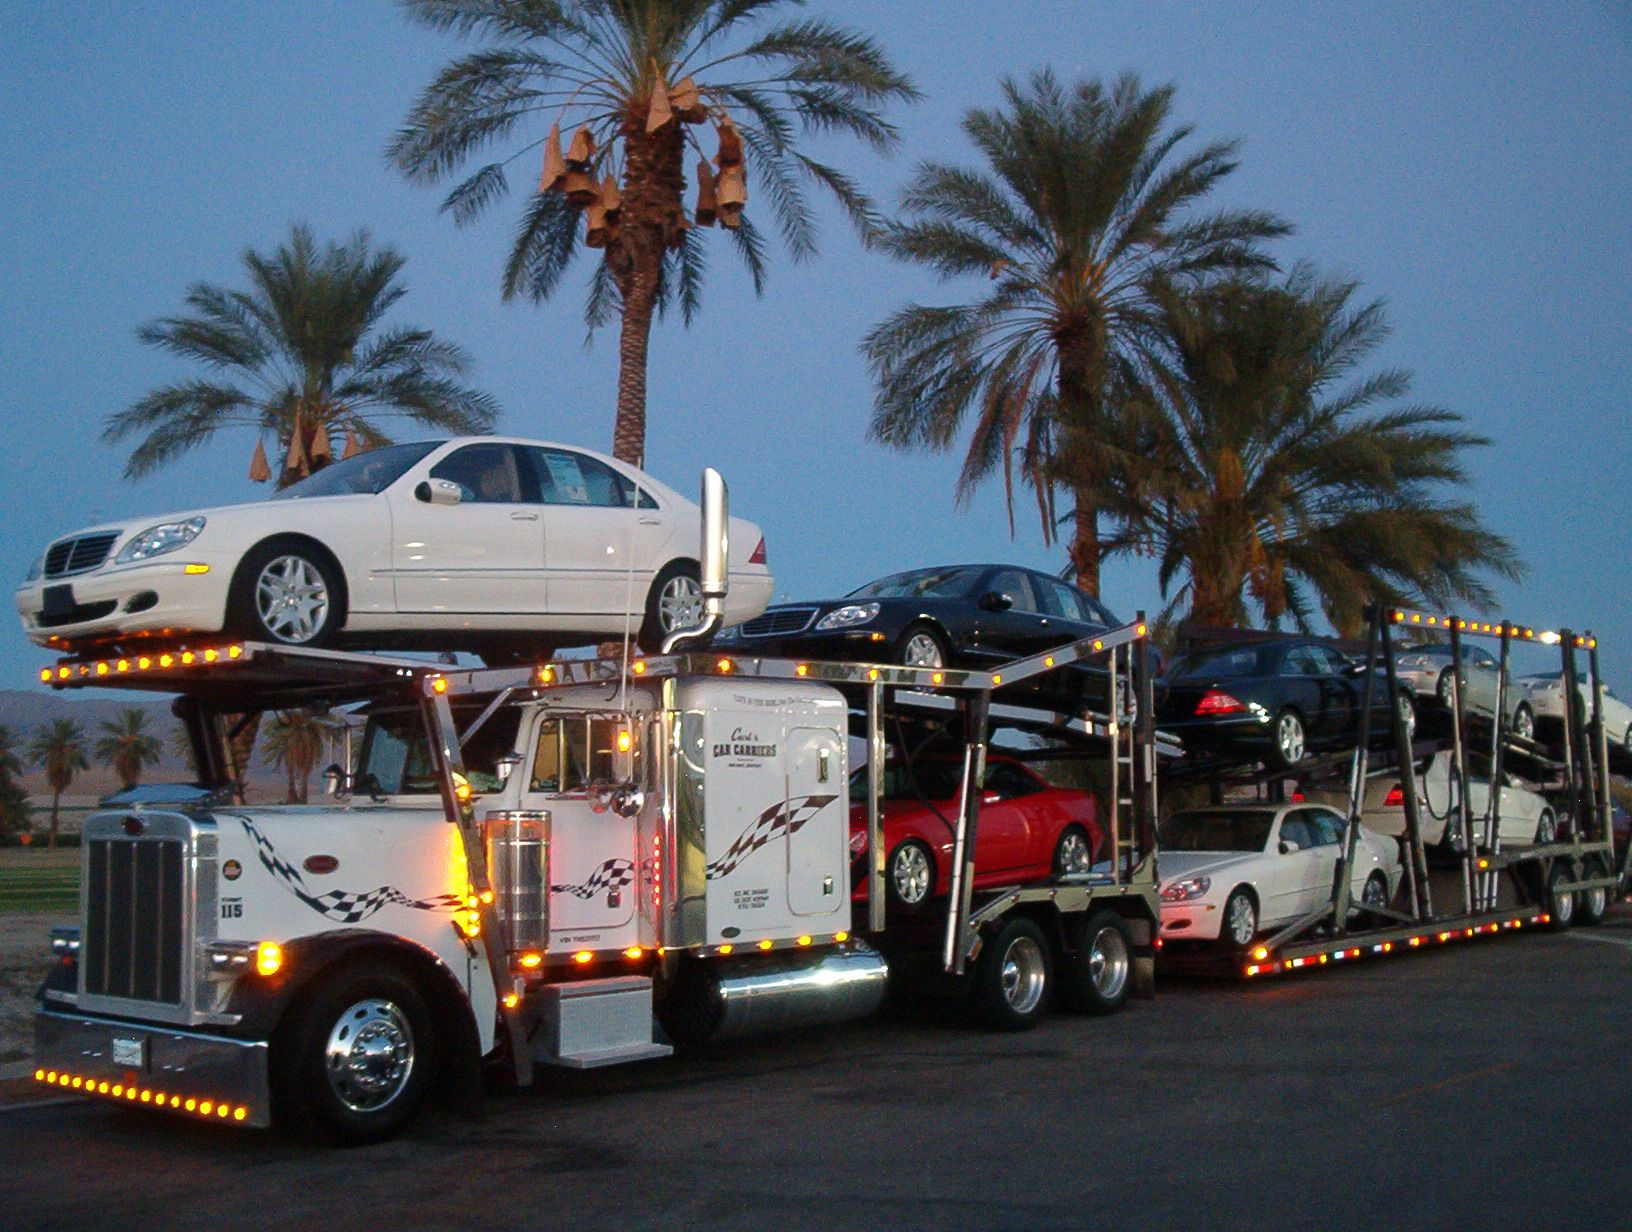 Car Transport Companies >> Providing Quality Car Transport Services At An Affordable Rate We